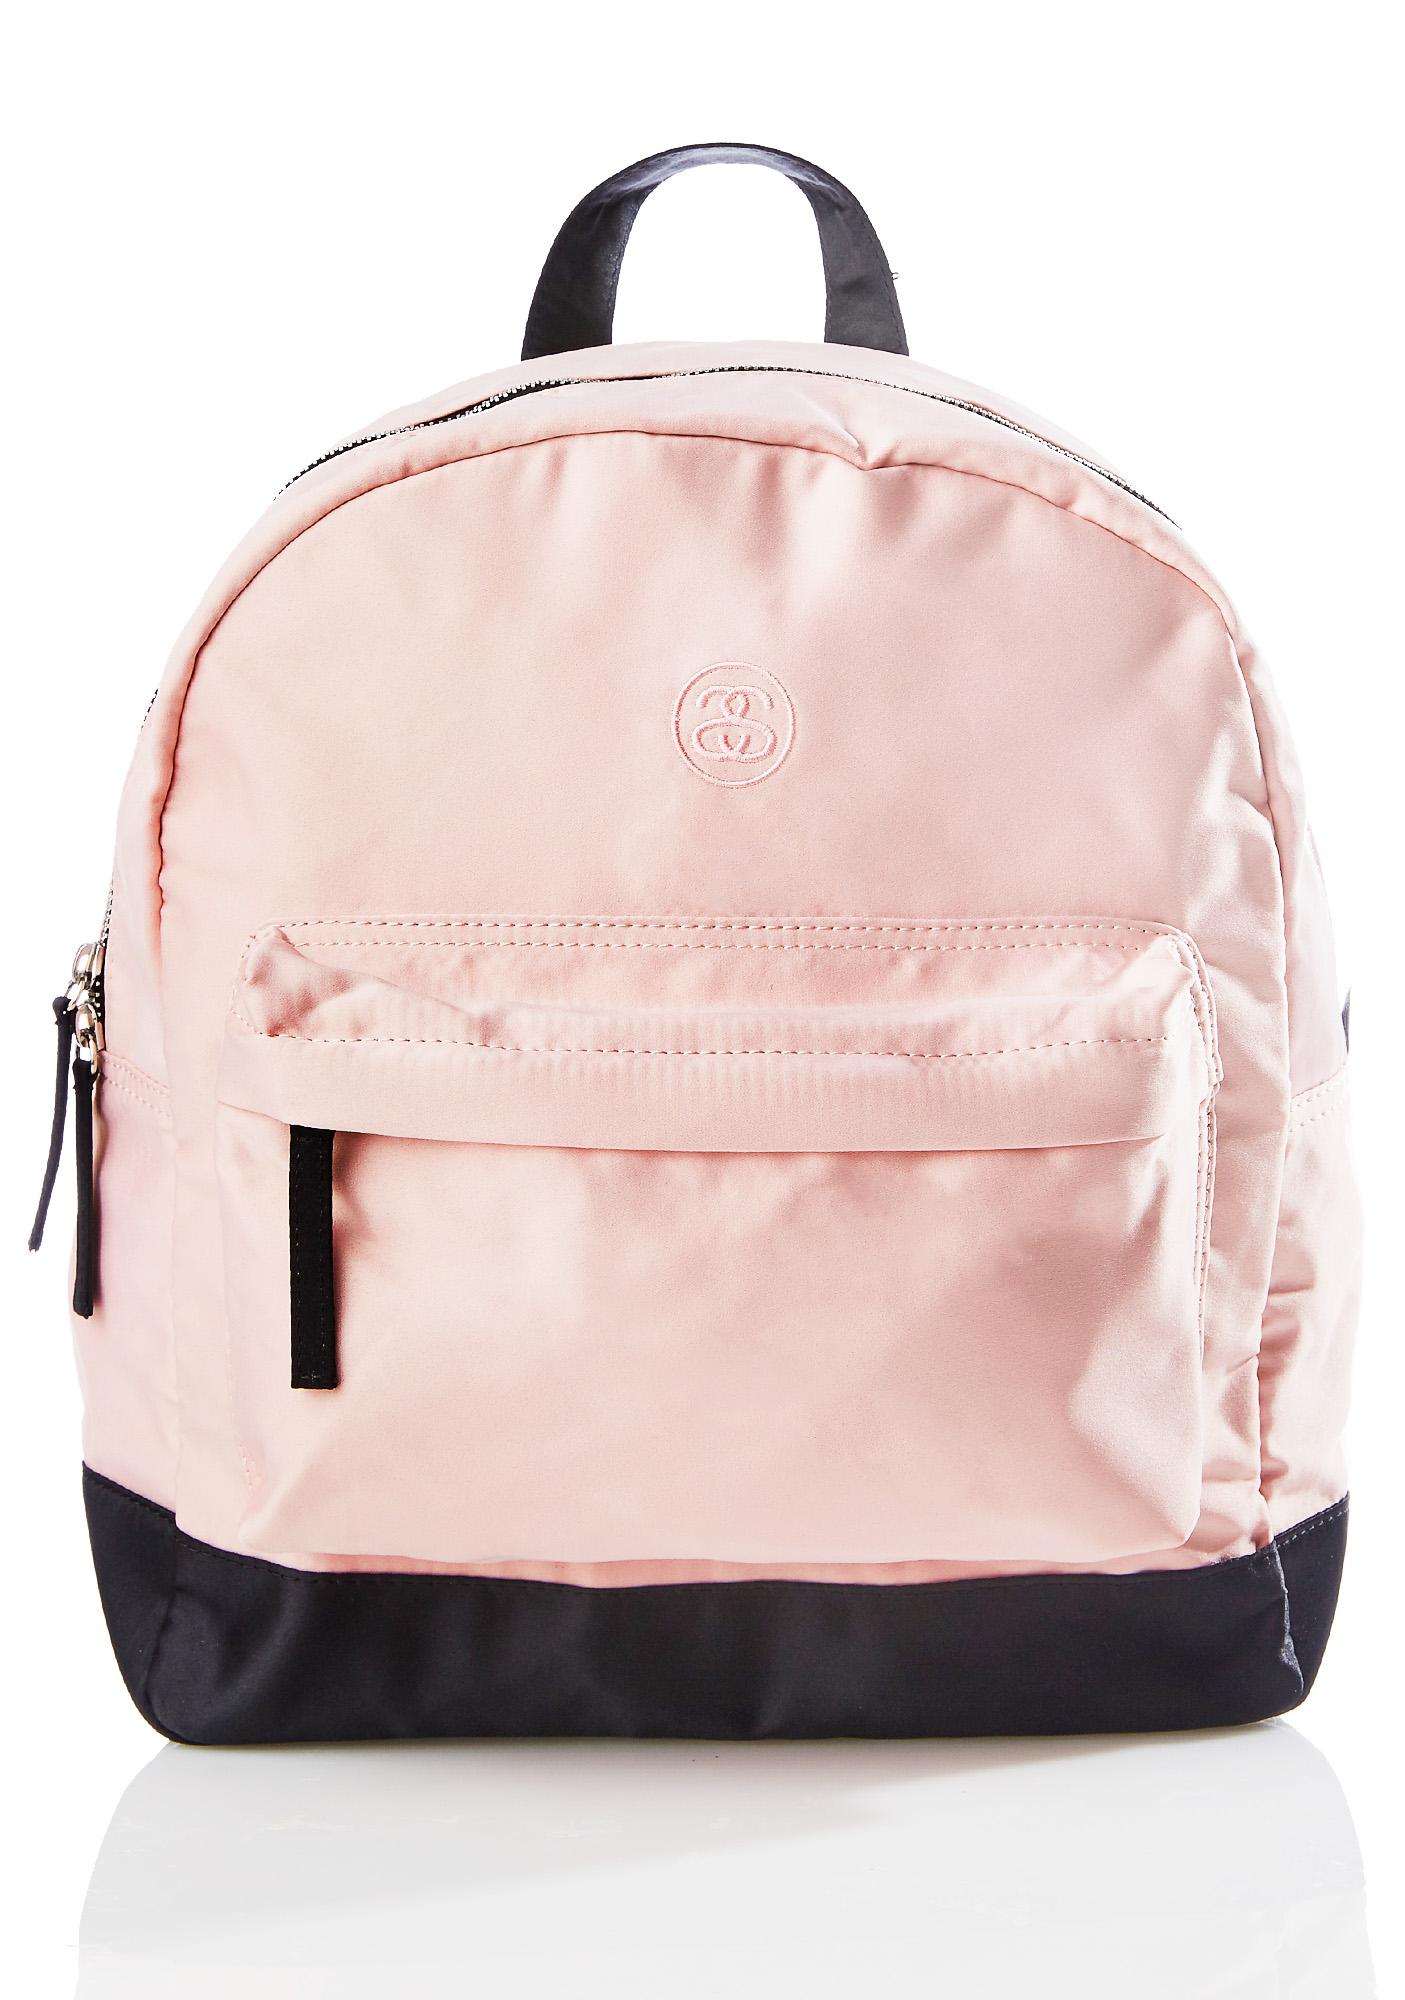 42496eb1d7 Stussy No Comply Backpack · Stussy No Comply Backpack ...